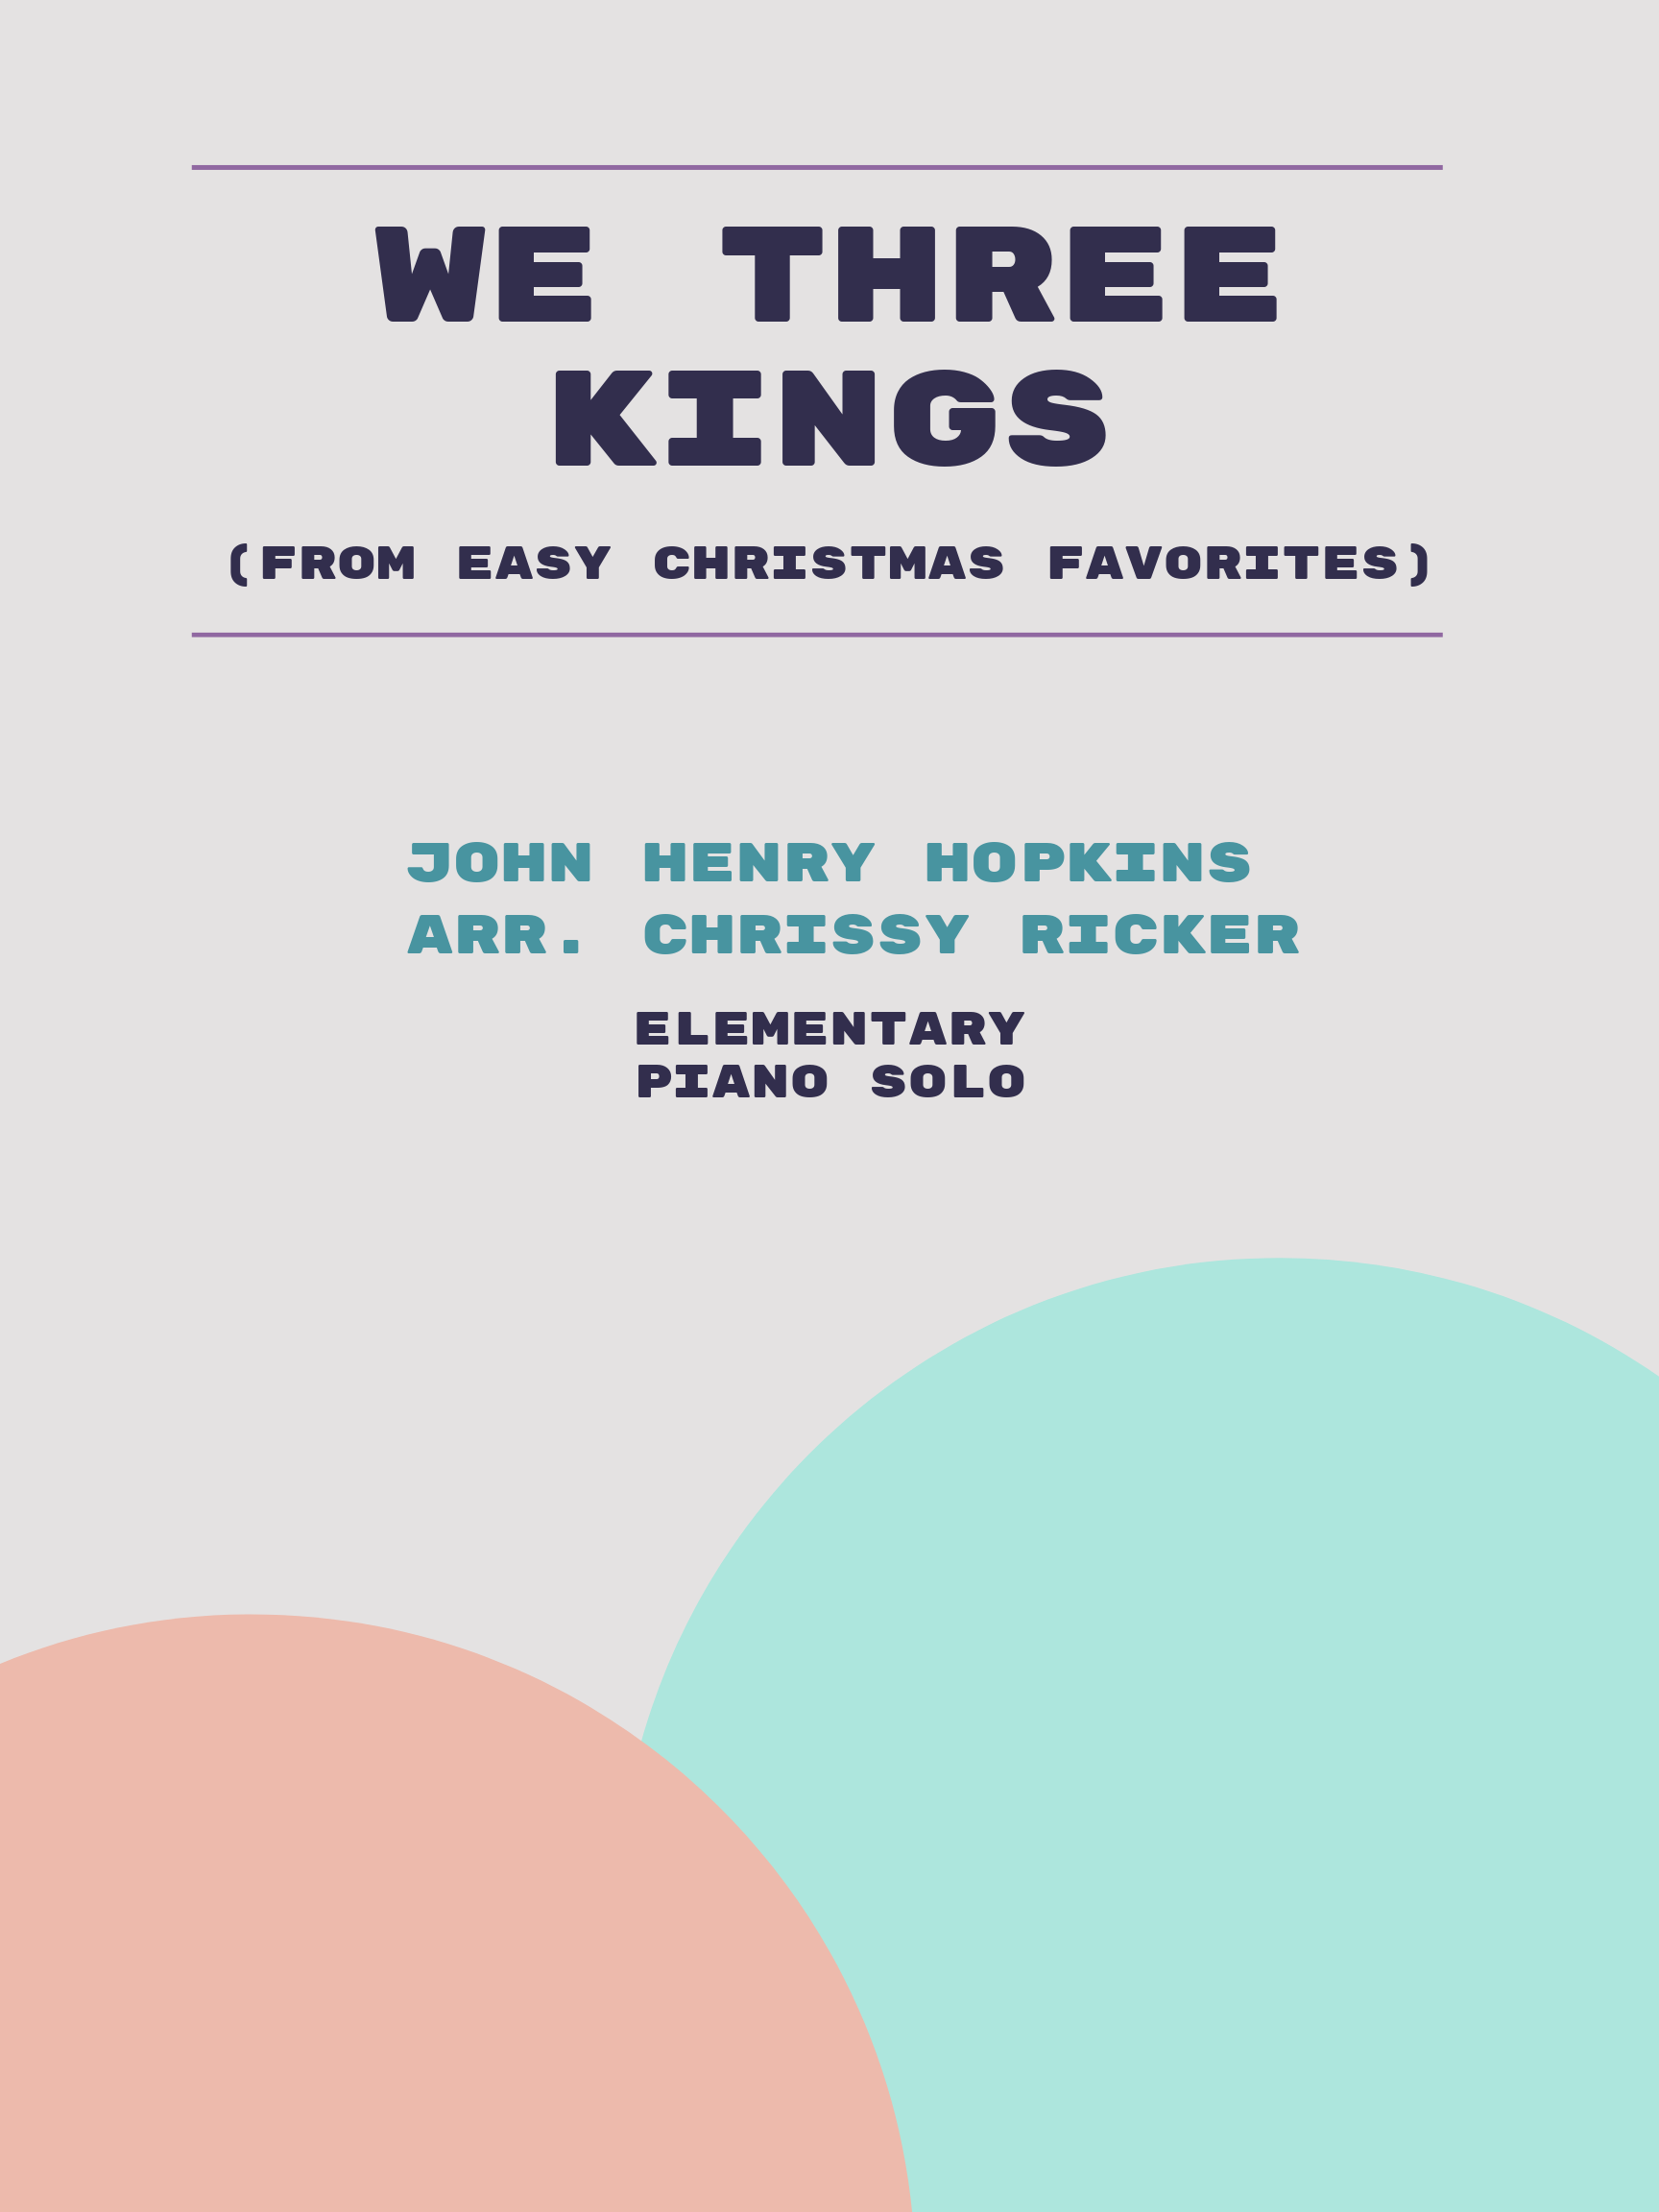 We Three Kings by John Henry Hopkins